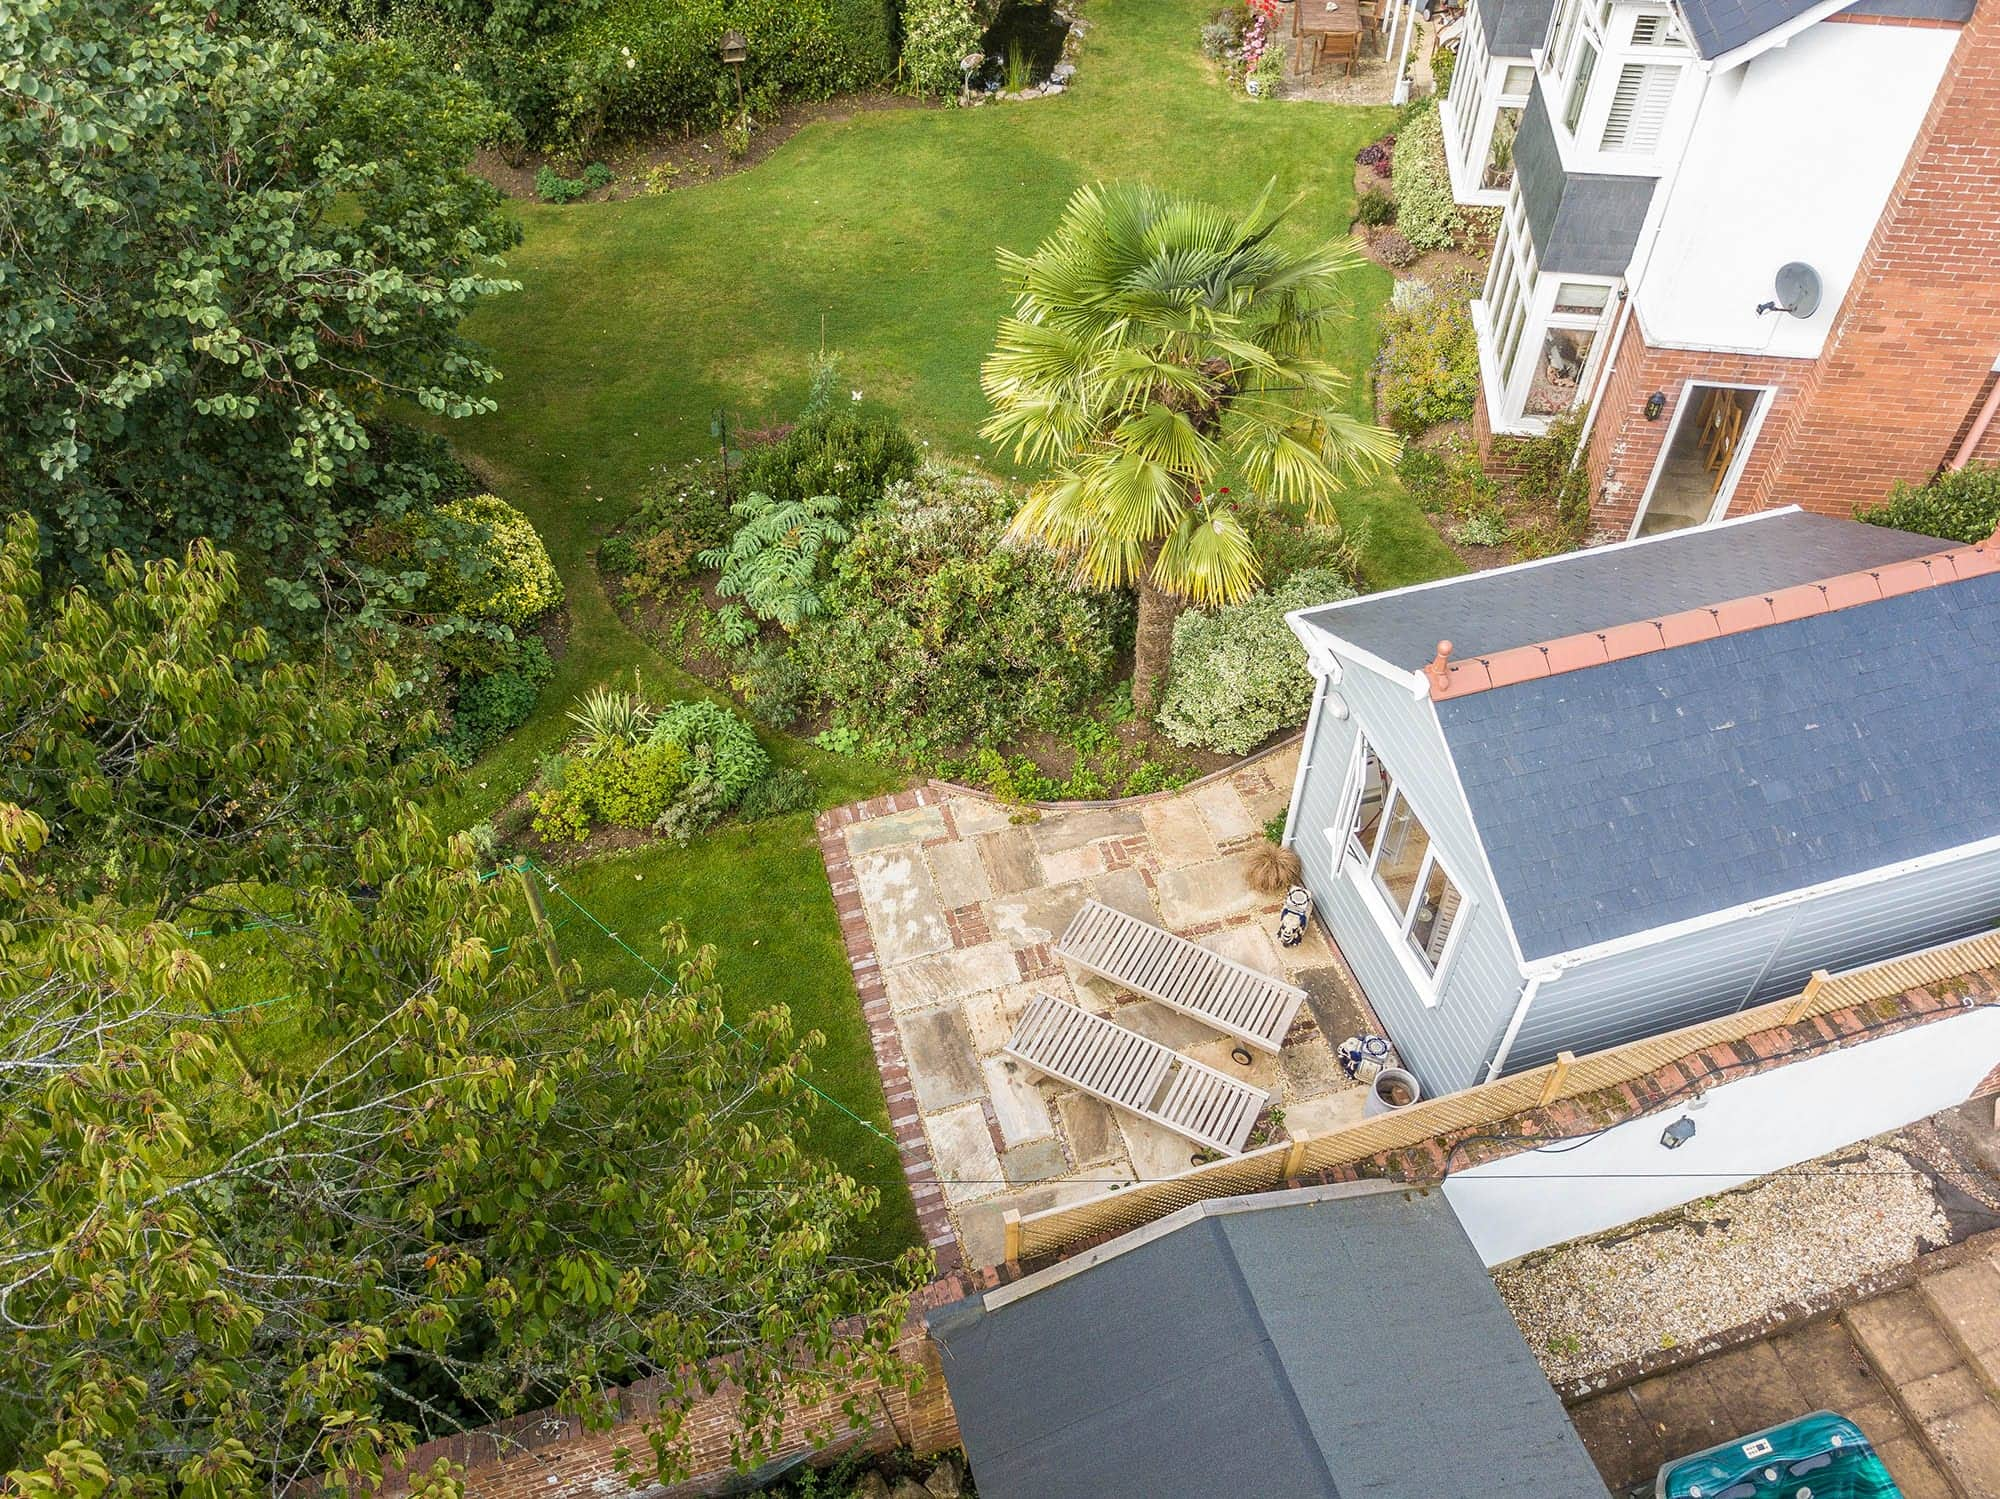 Aerial view of timber frame artist studio with slate roof